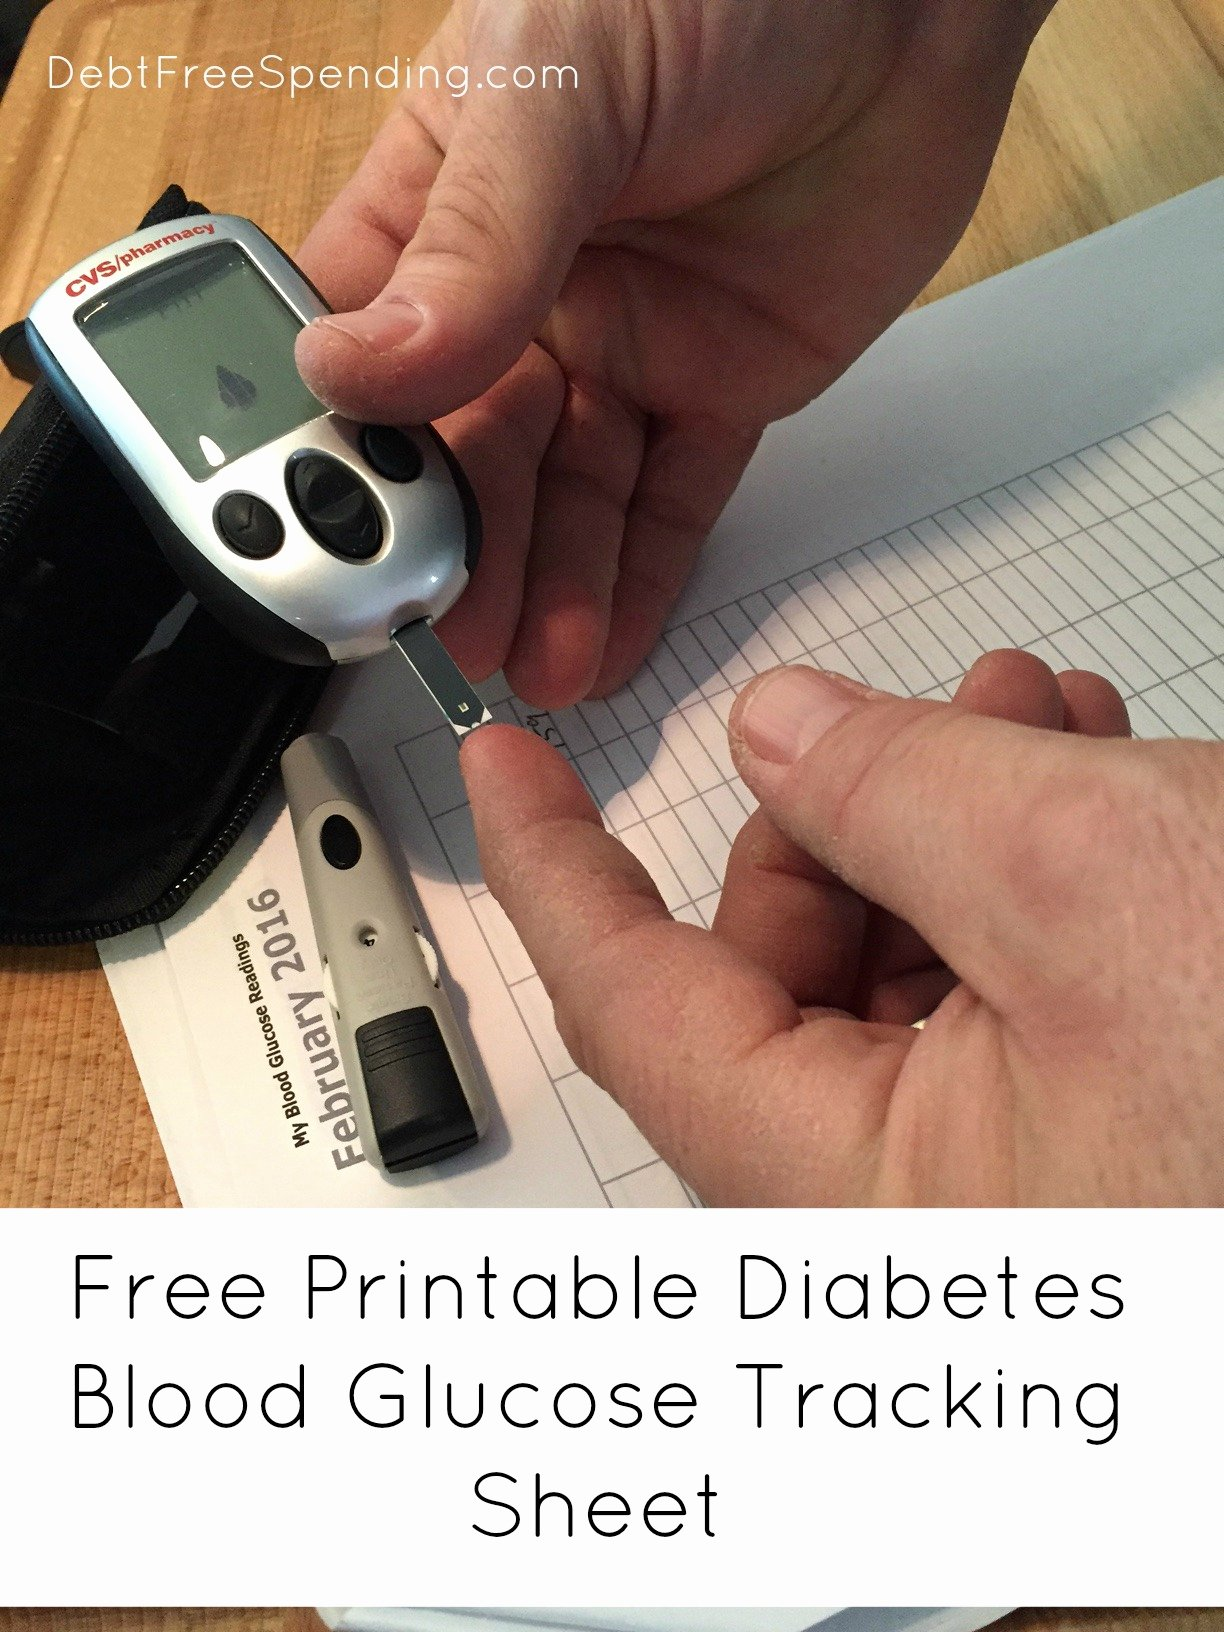 Diabetes Tracking Chart Printable New Blood Glucose Tracking for Diabetes Free Printable Debt